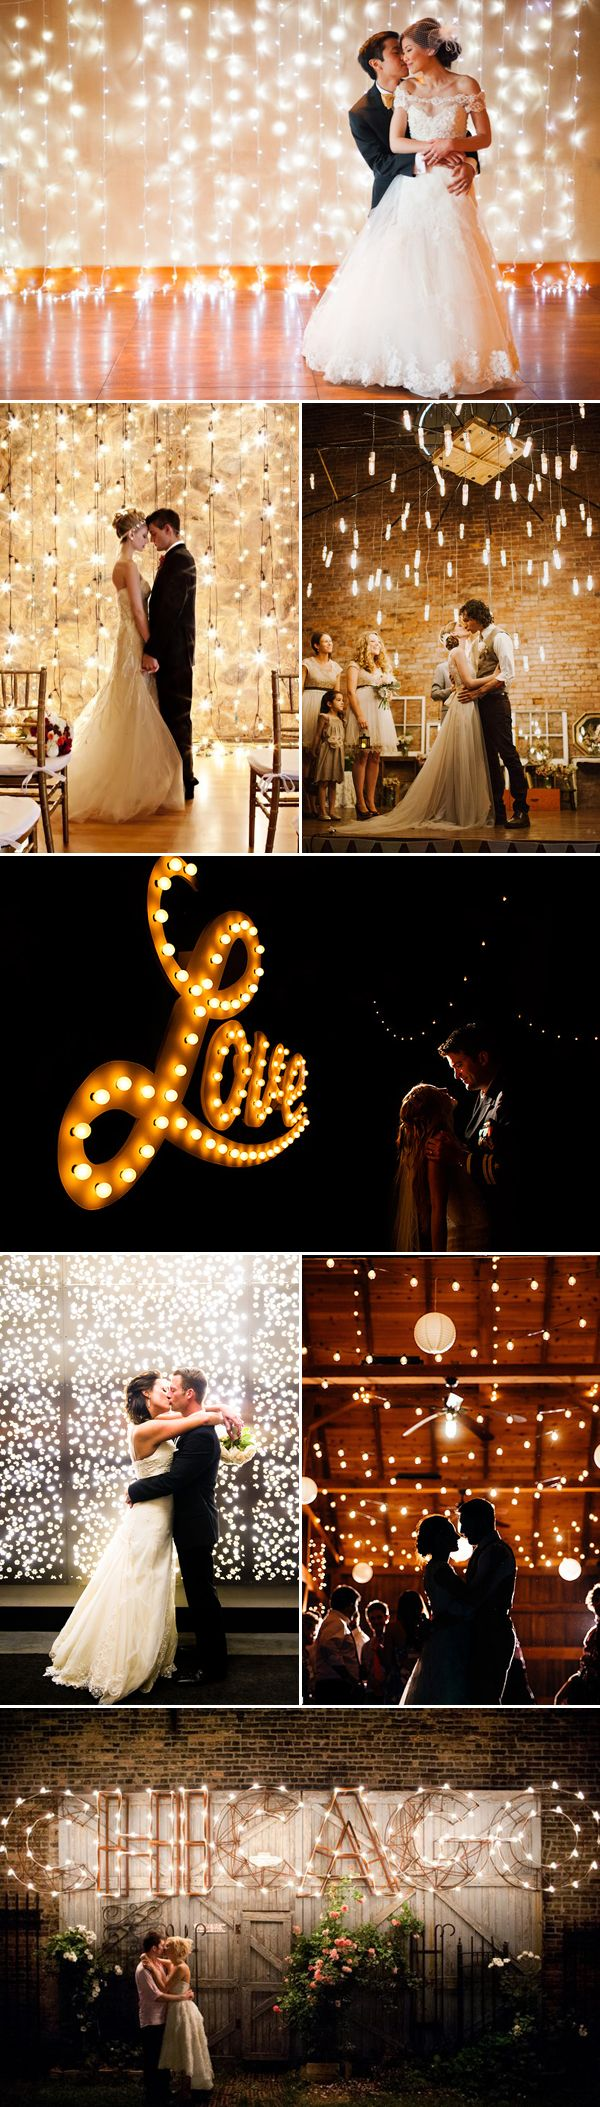 Indoor Light Wedding Backdrop Decoration Ideas / http://www.deerpearlflowers.com/39-magical-string-hanging-light-decorations-wedding-backdrop/